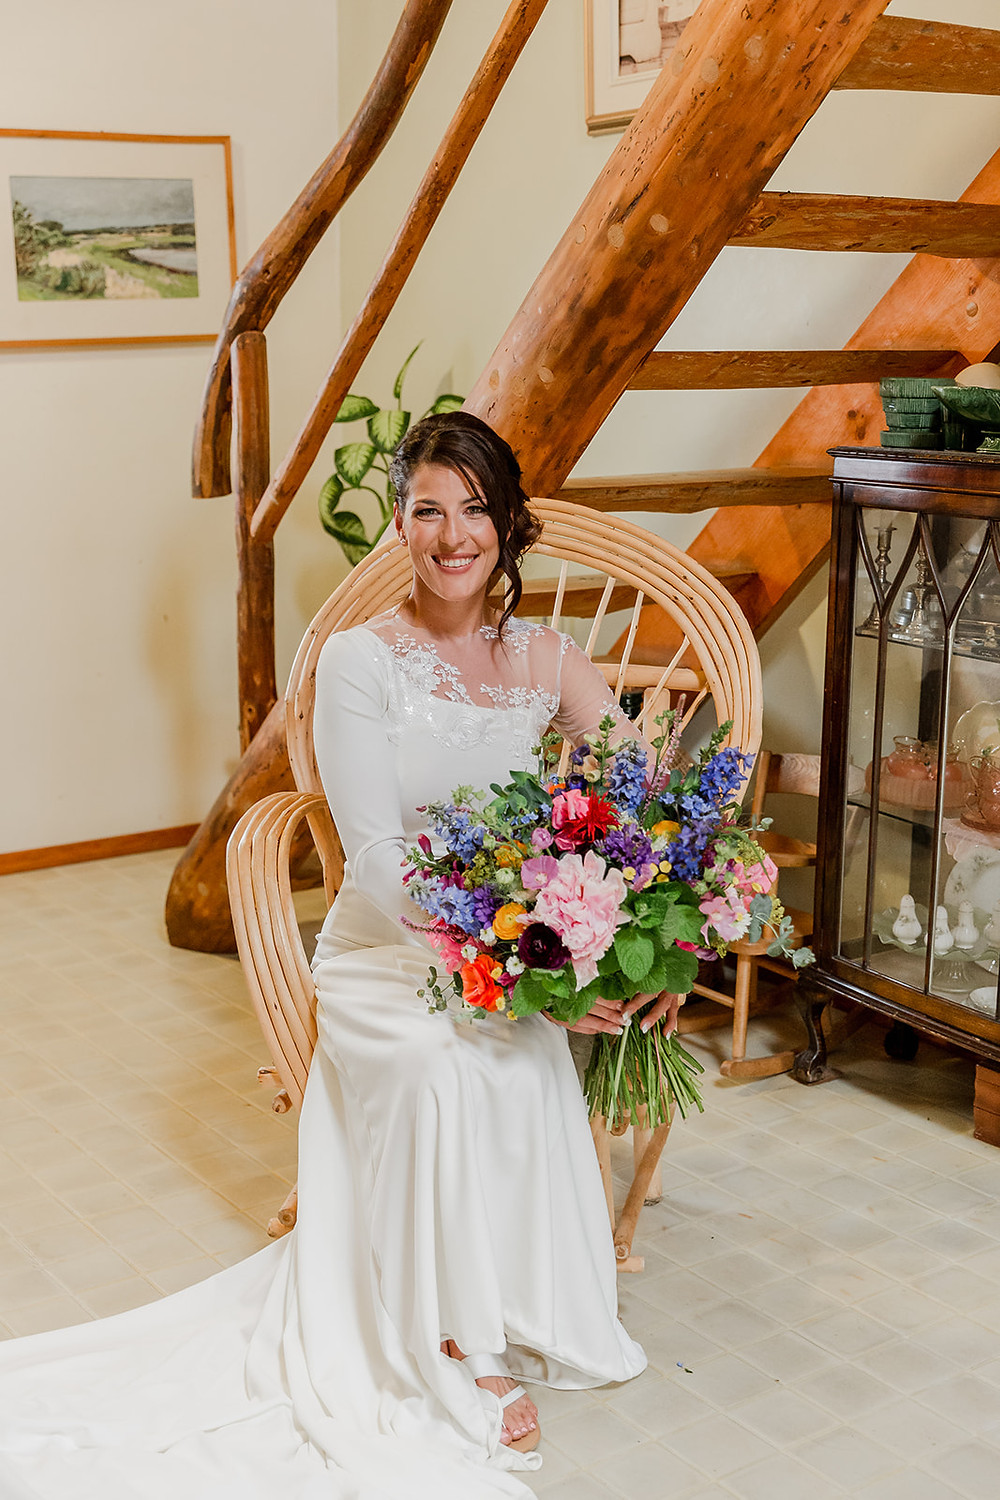 Bride in Chair, Bride in Wicker Chair, Bride, Bride with flowers